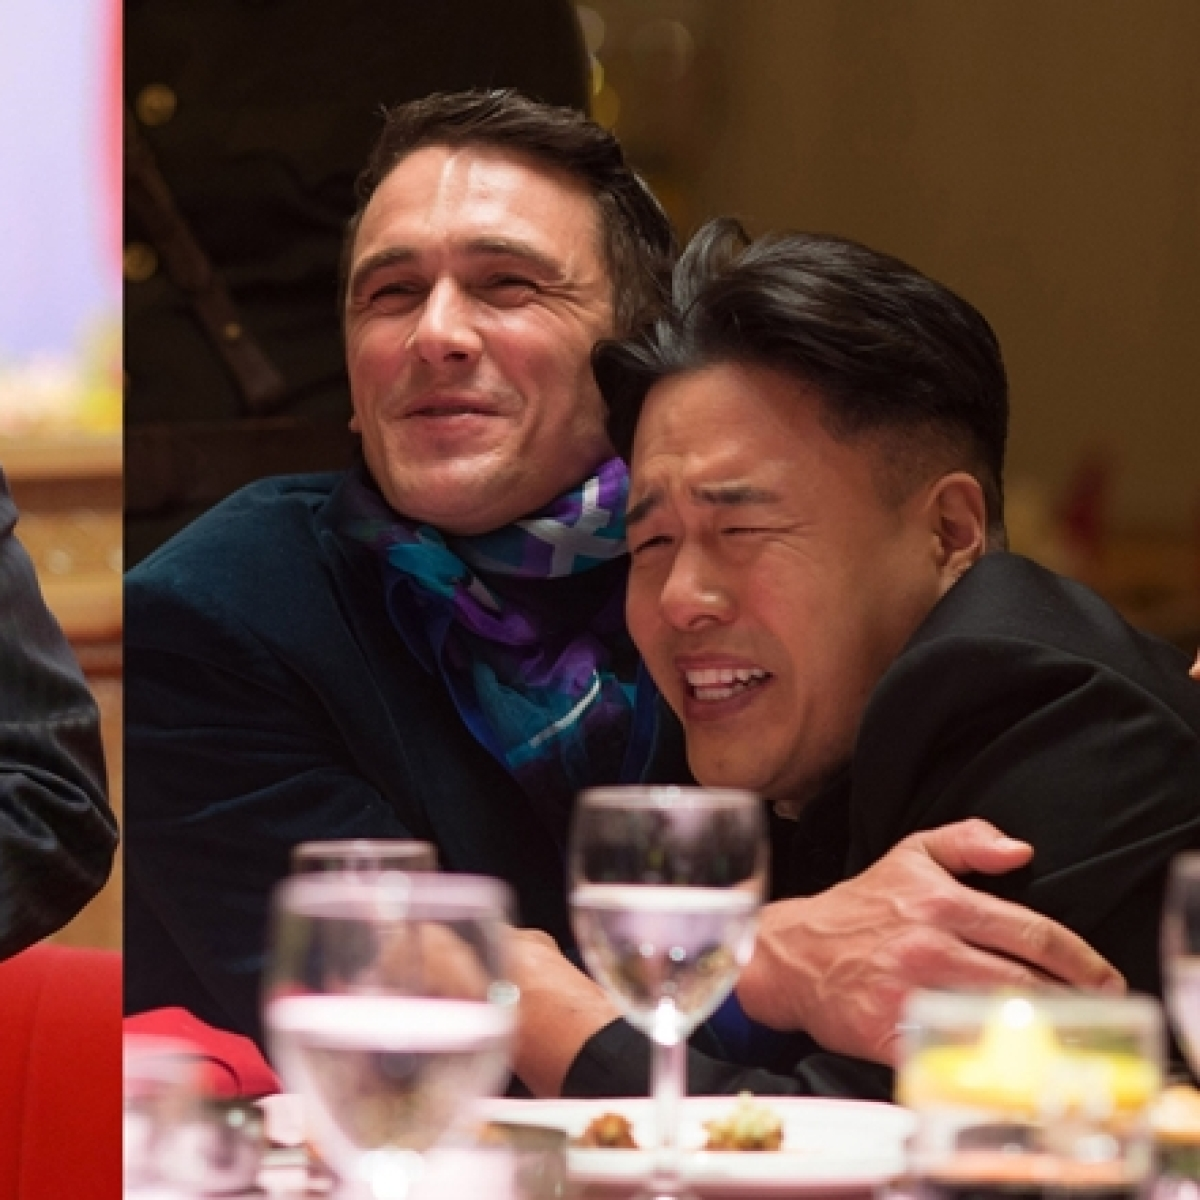 Kim Jong-un critical? When the North Korean dictator was killed in 'The Interview' starring James Franco, Seth Rogen